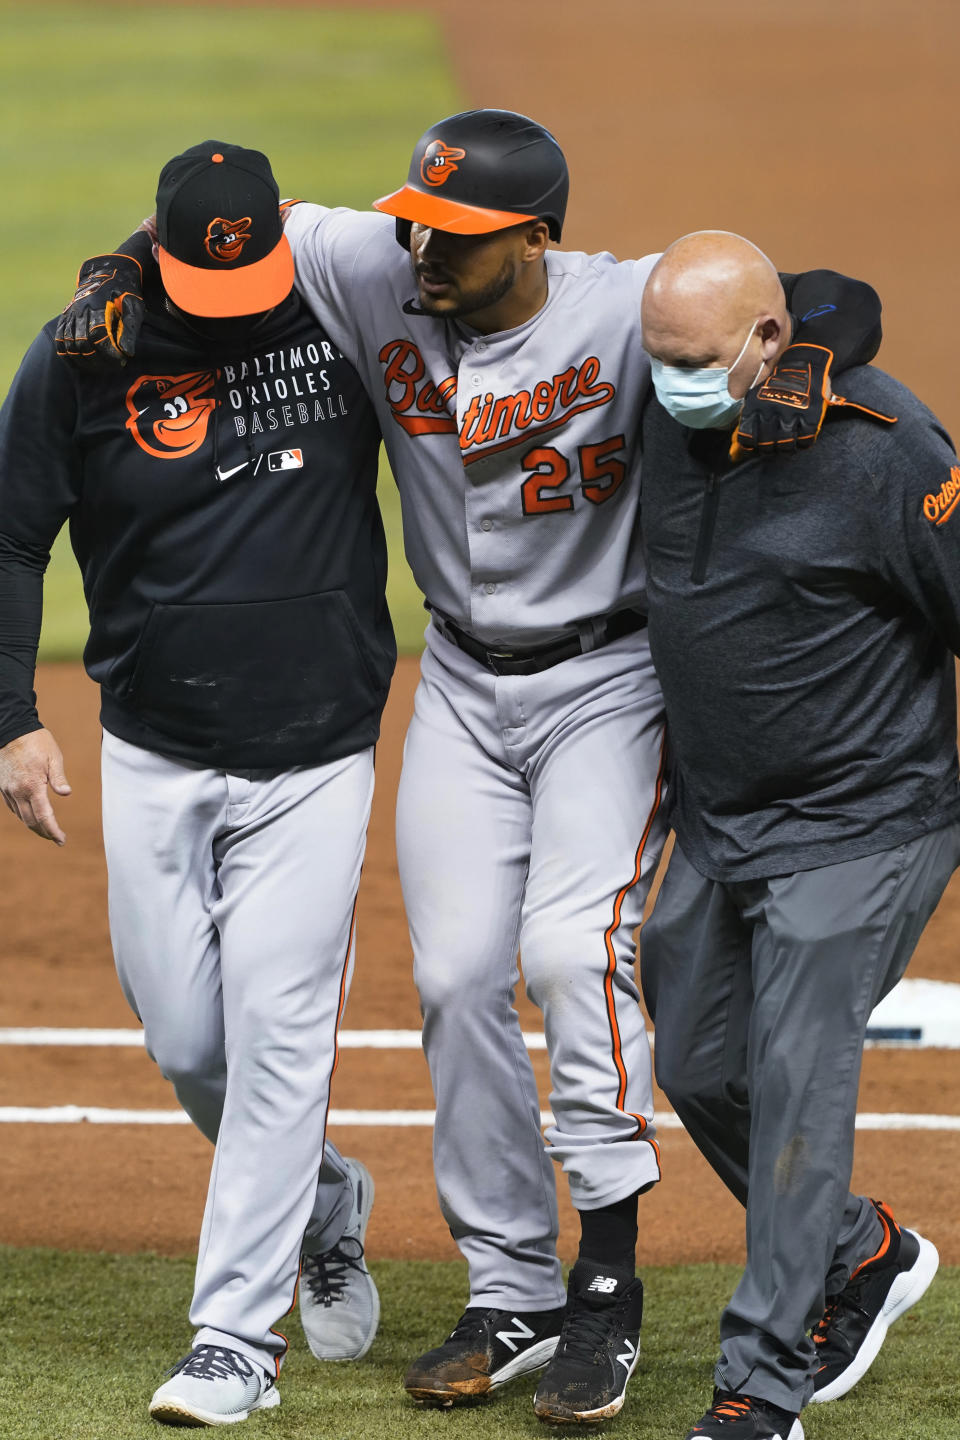 Baltimore Orioles' Anthony Santander (25) is assisted off the field after he was injured during the first inning of a baseball game against the Miami Marlins, Tuesday, April 20, 2021, in Miami. (AP Photo/Marta Lavandier)